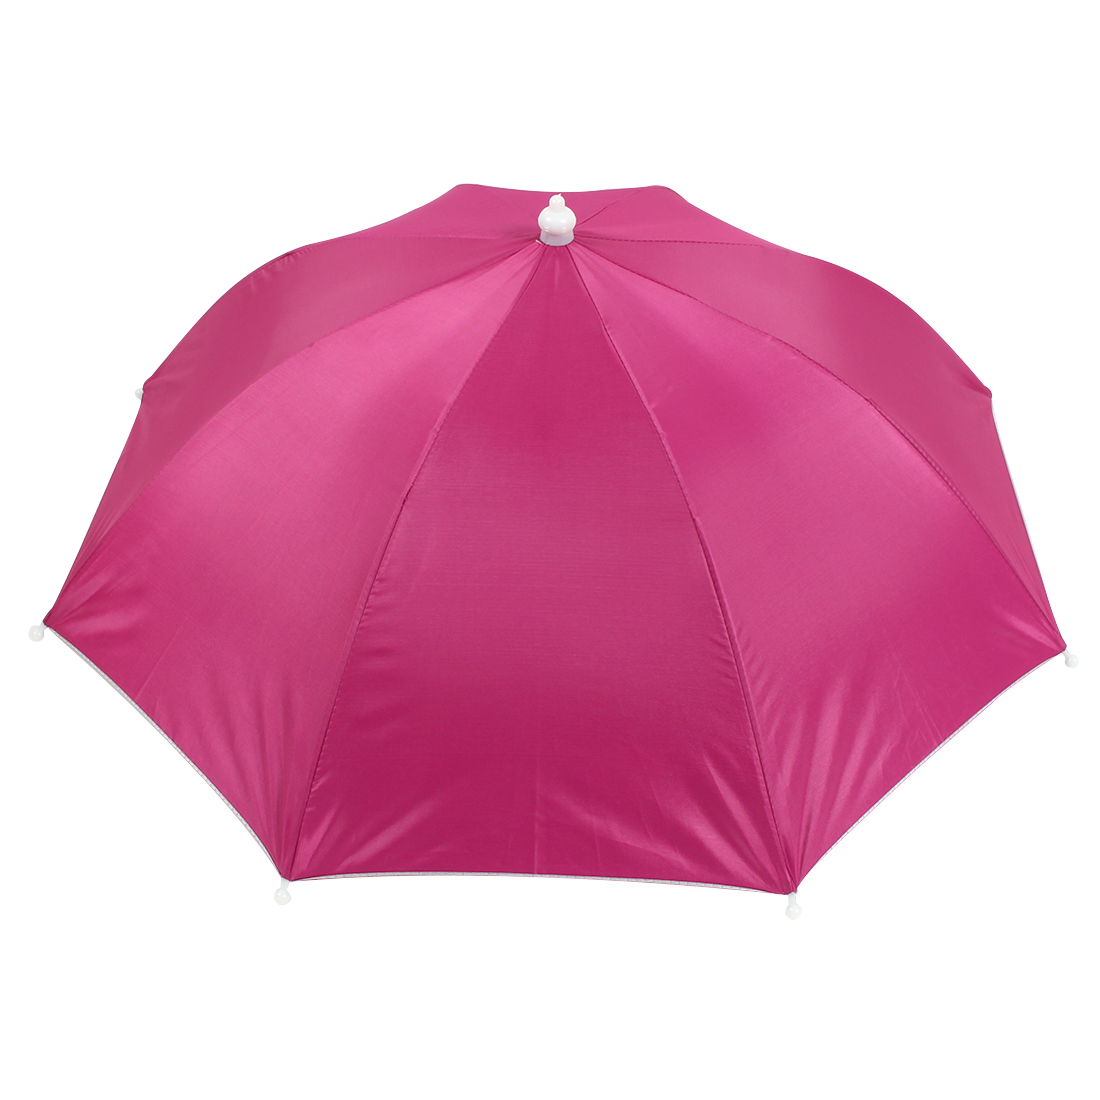 Elastic Band Portable Sun Protective Fishing Umbrella Hat Fuchsia